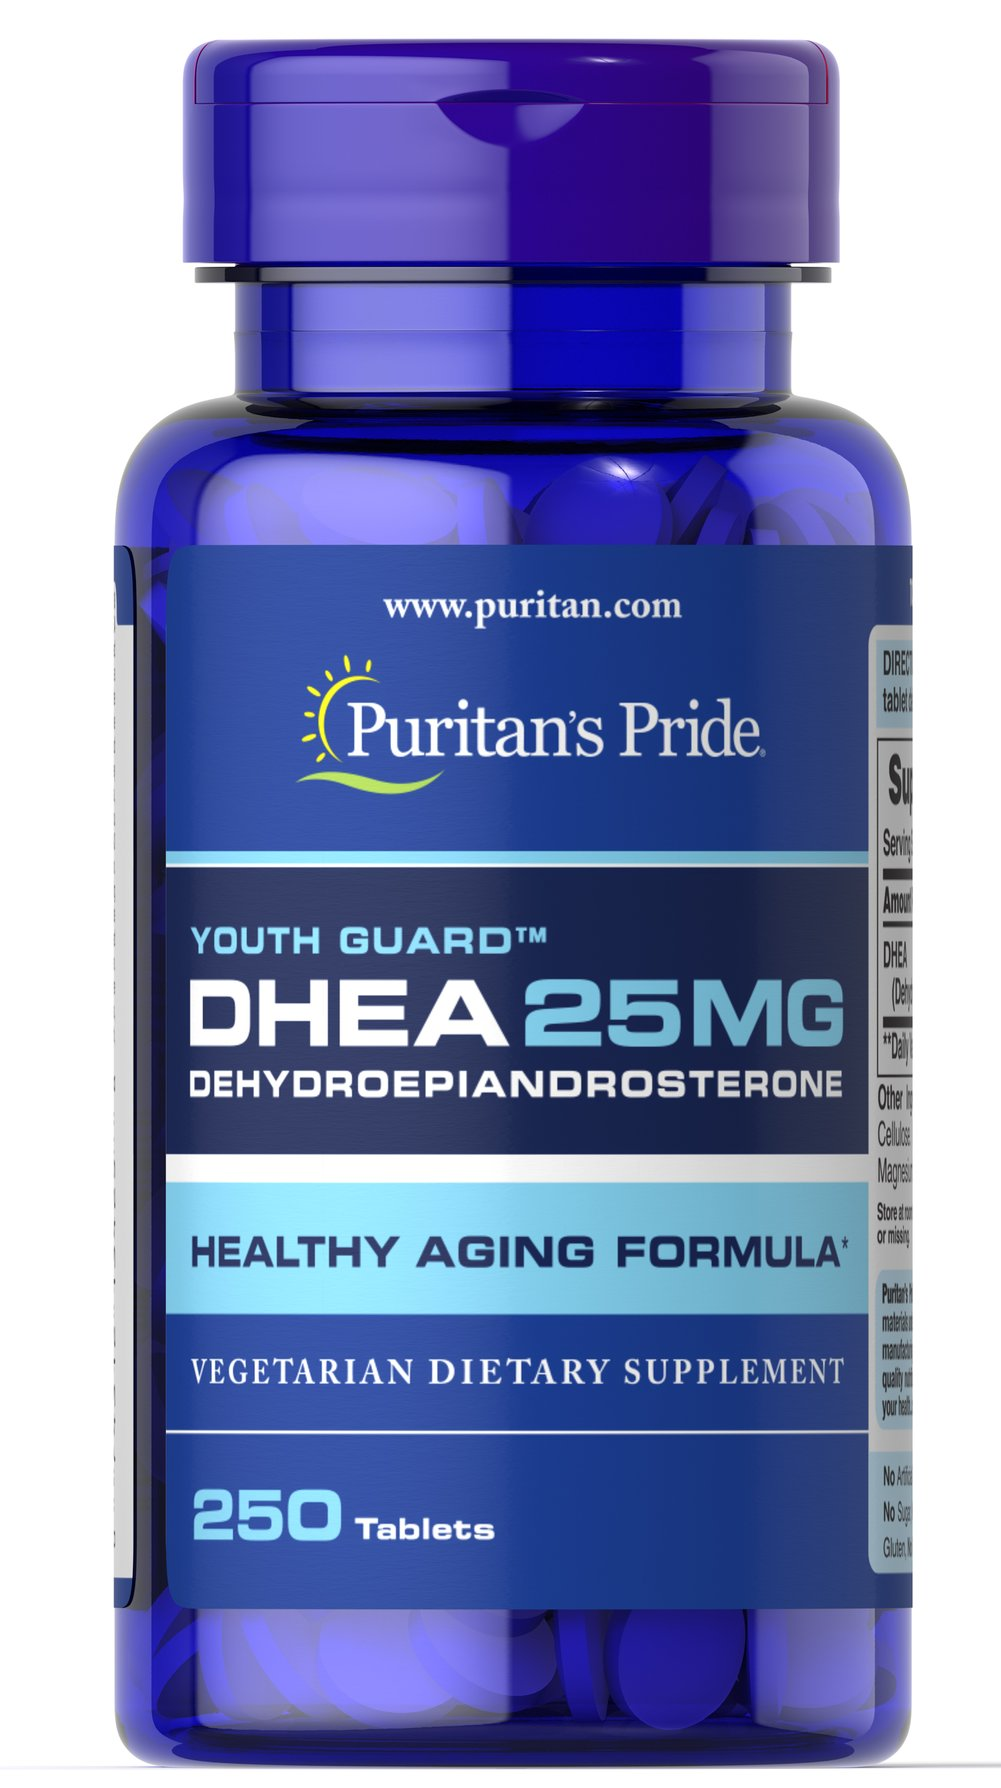 DHEA 25 mg <p>DHEA (Dehydroepiandrosterone) is made by the adrenal glands, which are located just above the kidneys and liver.  Levels of DHEA can decline with age.  Adults can take one tablet daily with a meal.</p> 250 Tablets 25 mg $17.99